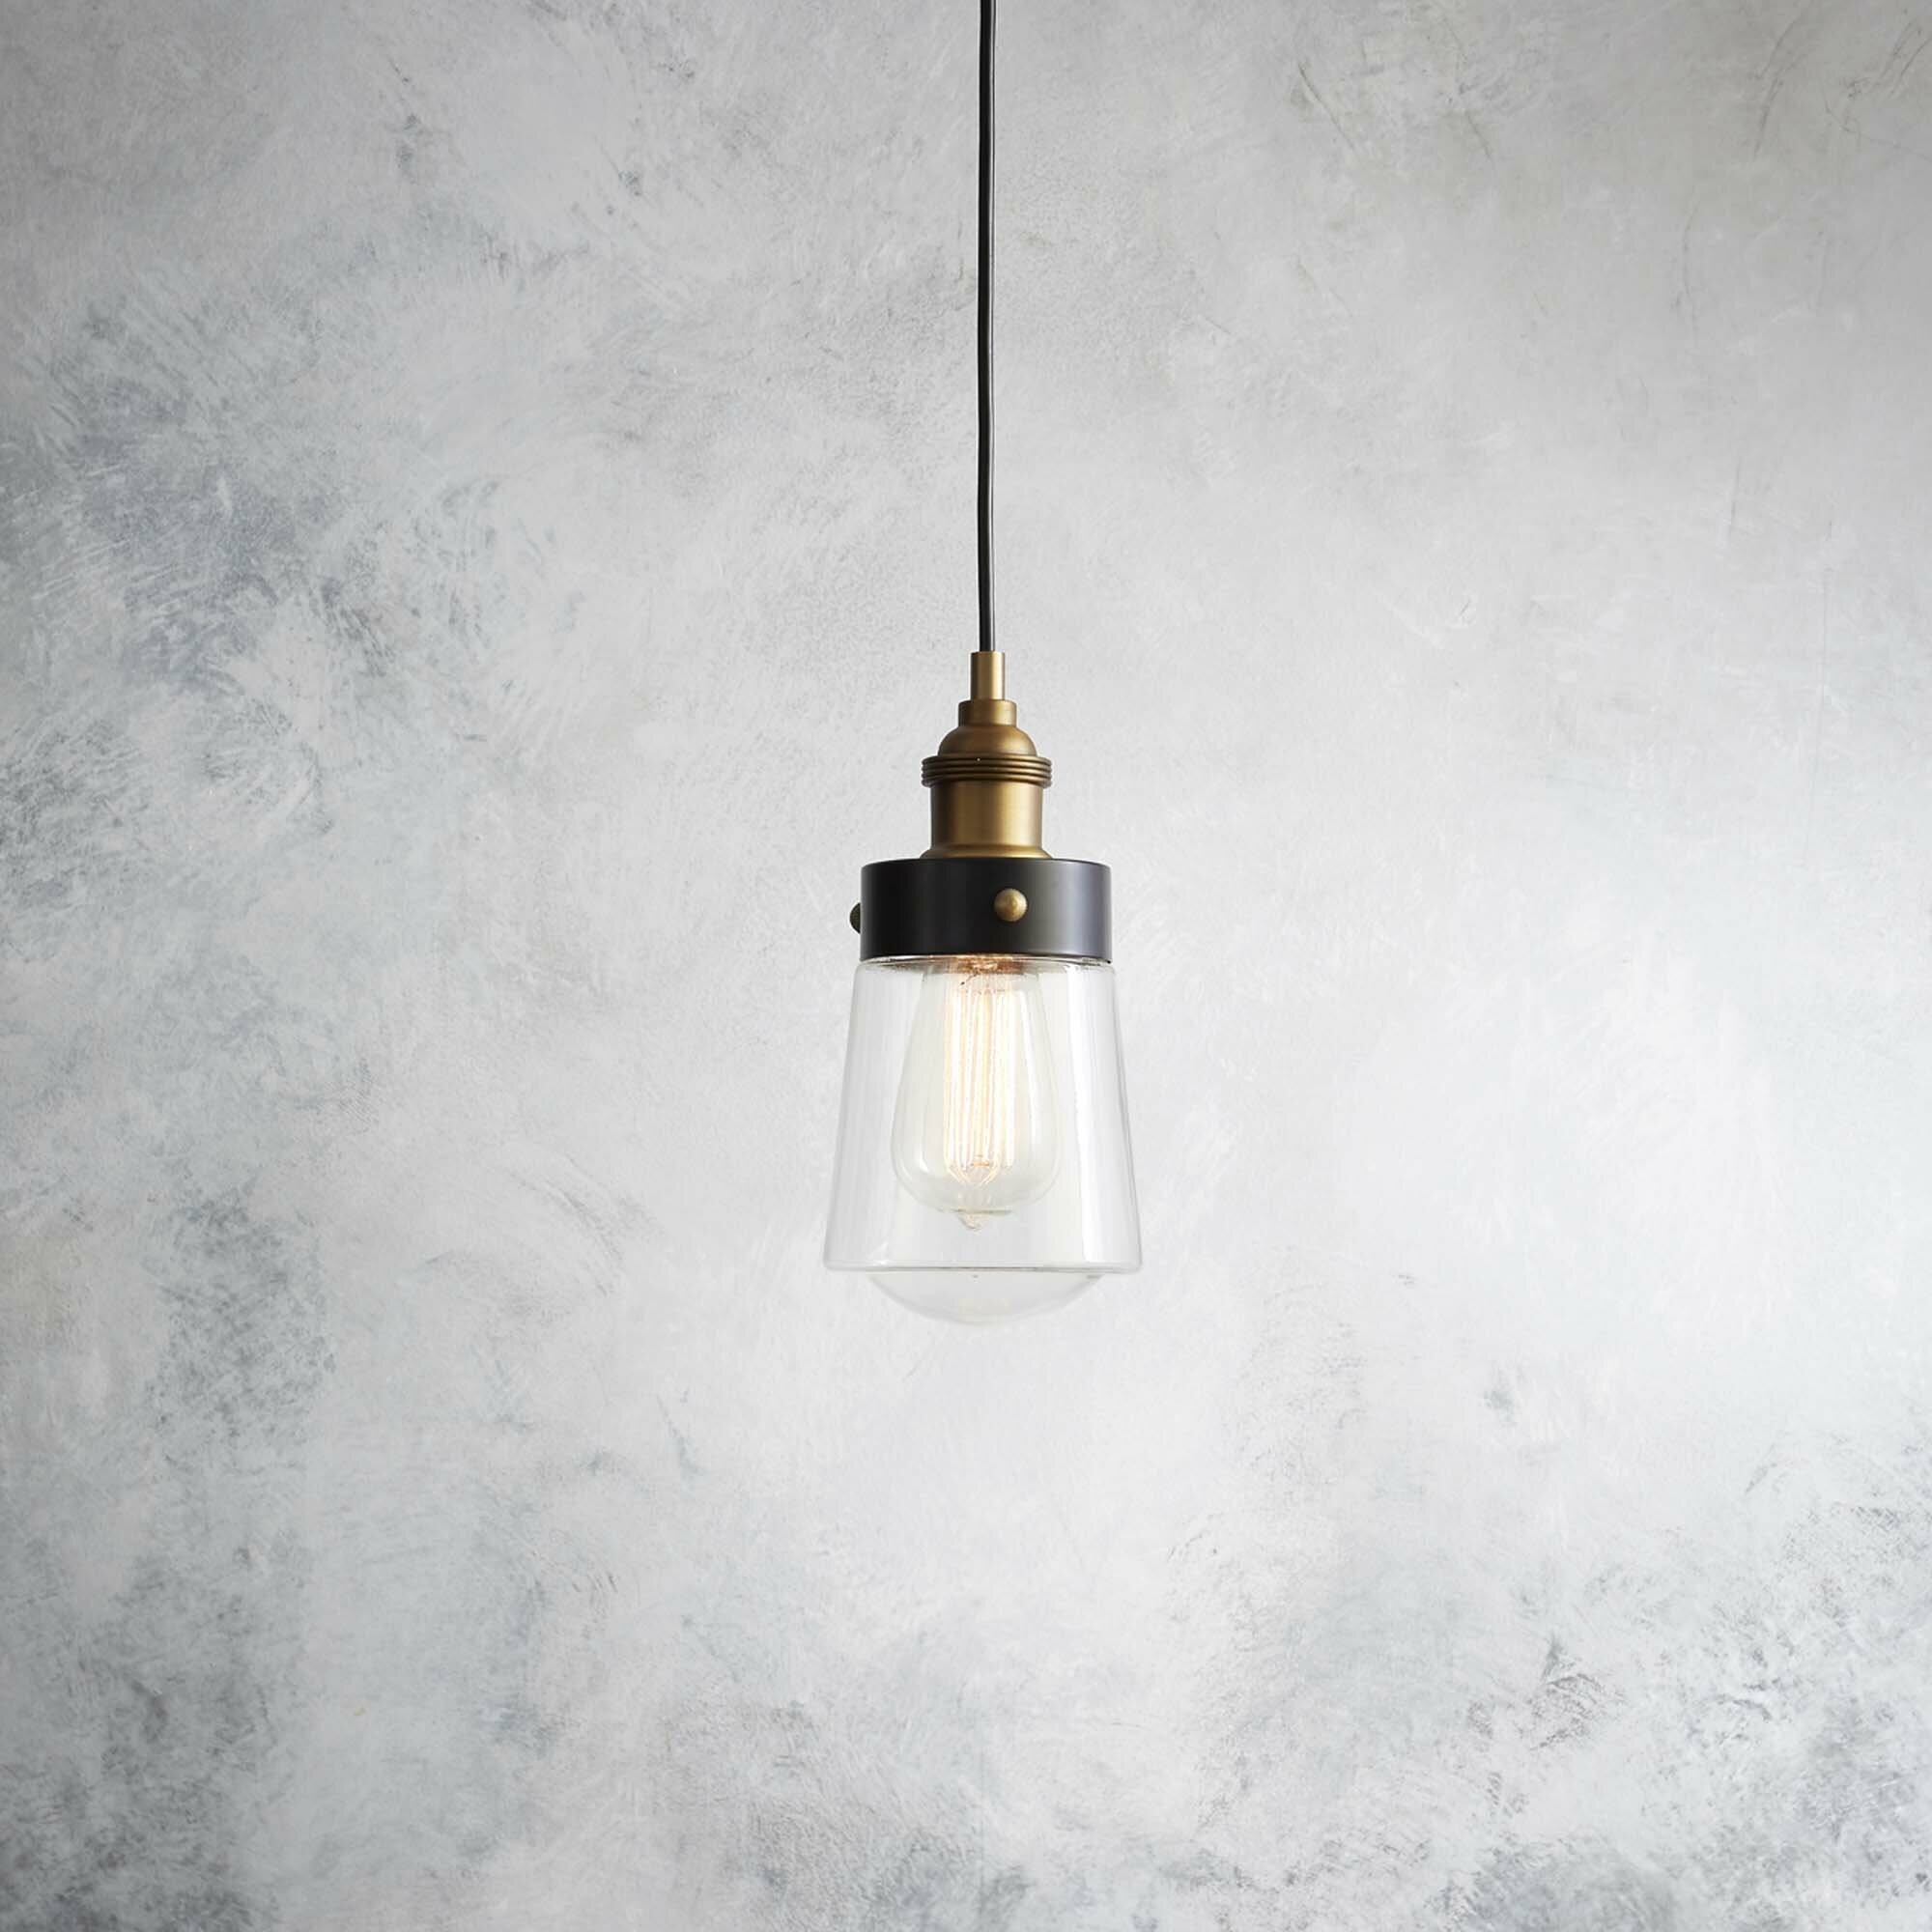 gather glass shade collection lighting etched with light mini pendant black progress